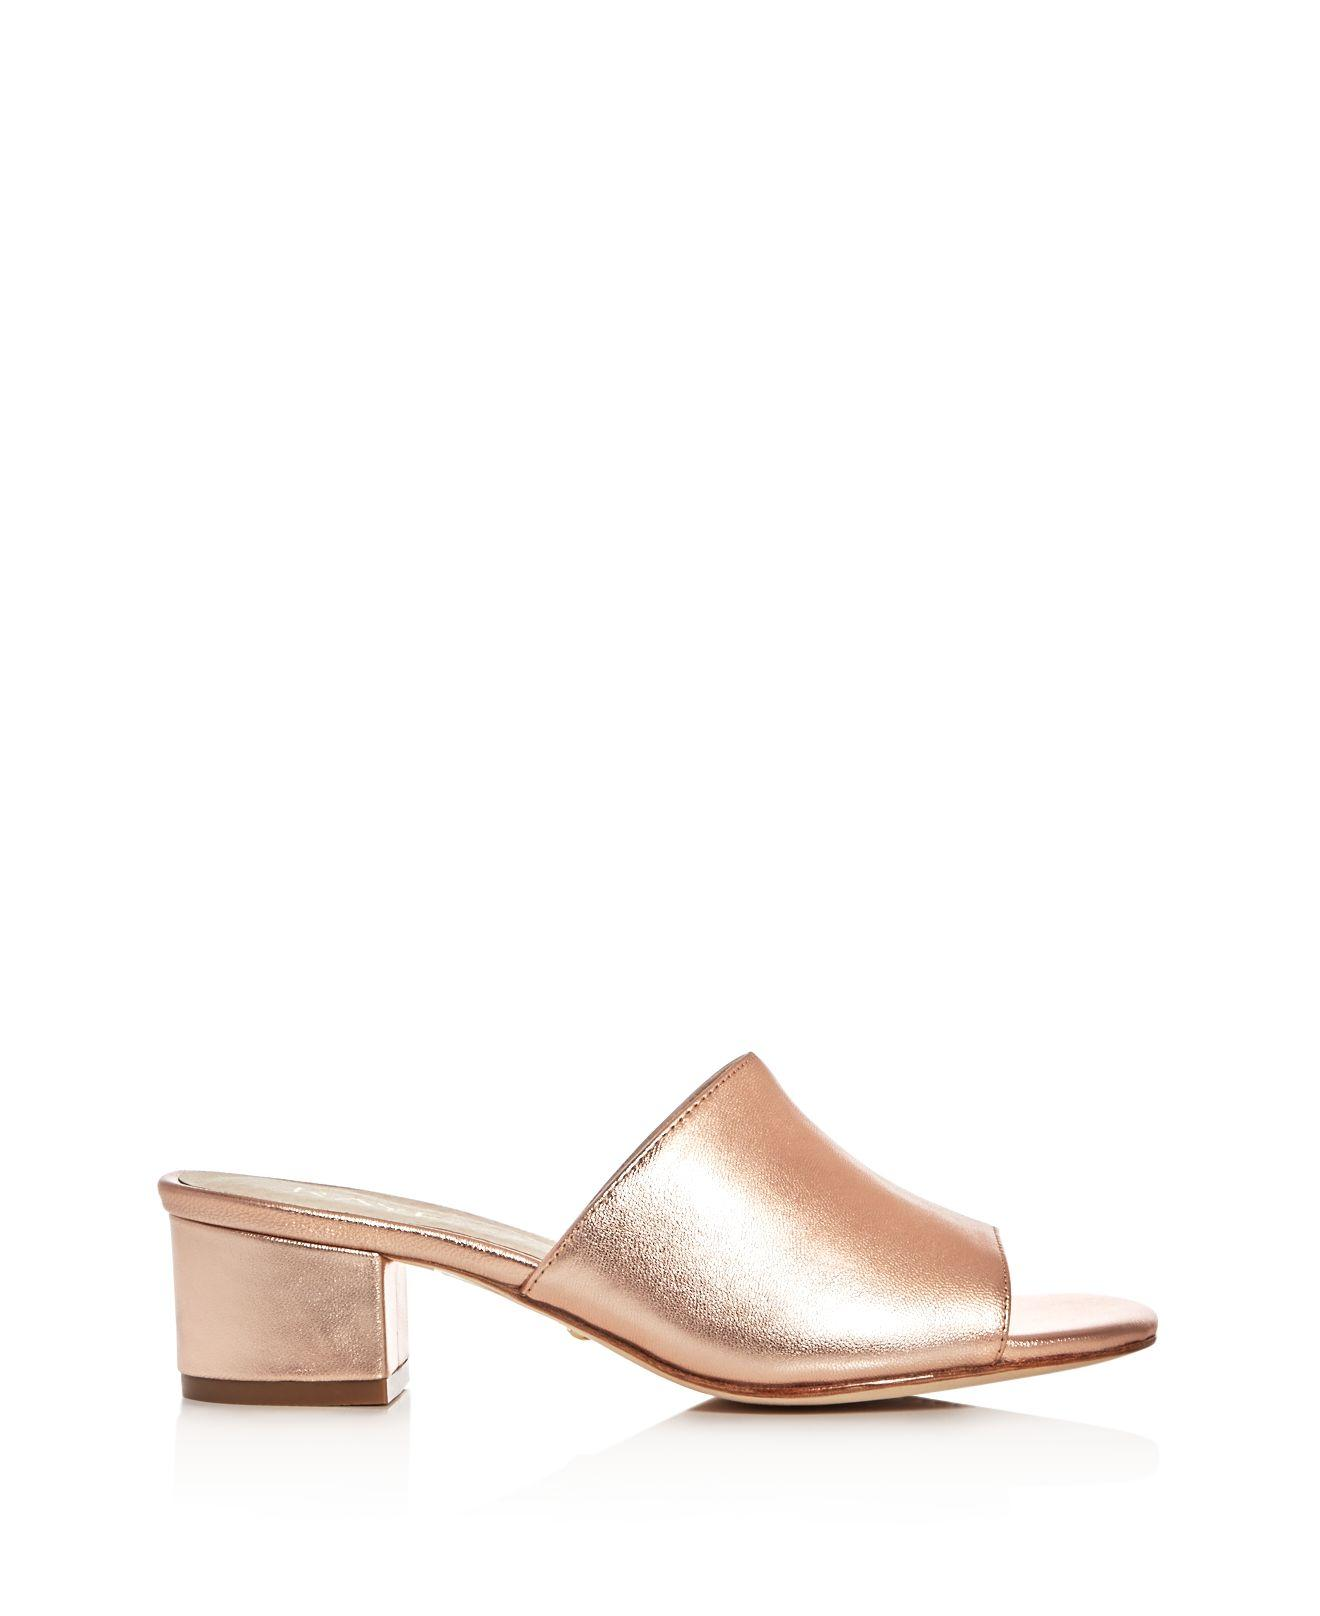 Kenneth Cole  Women S Shoes